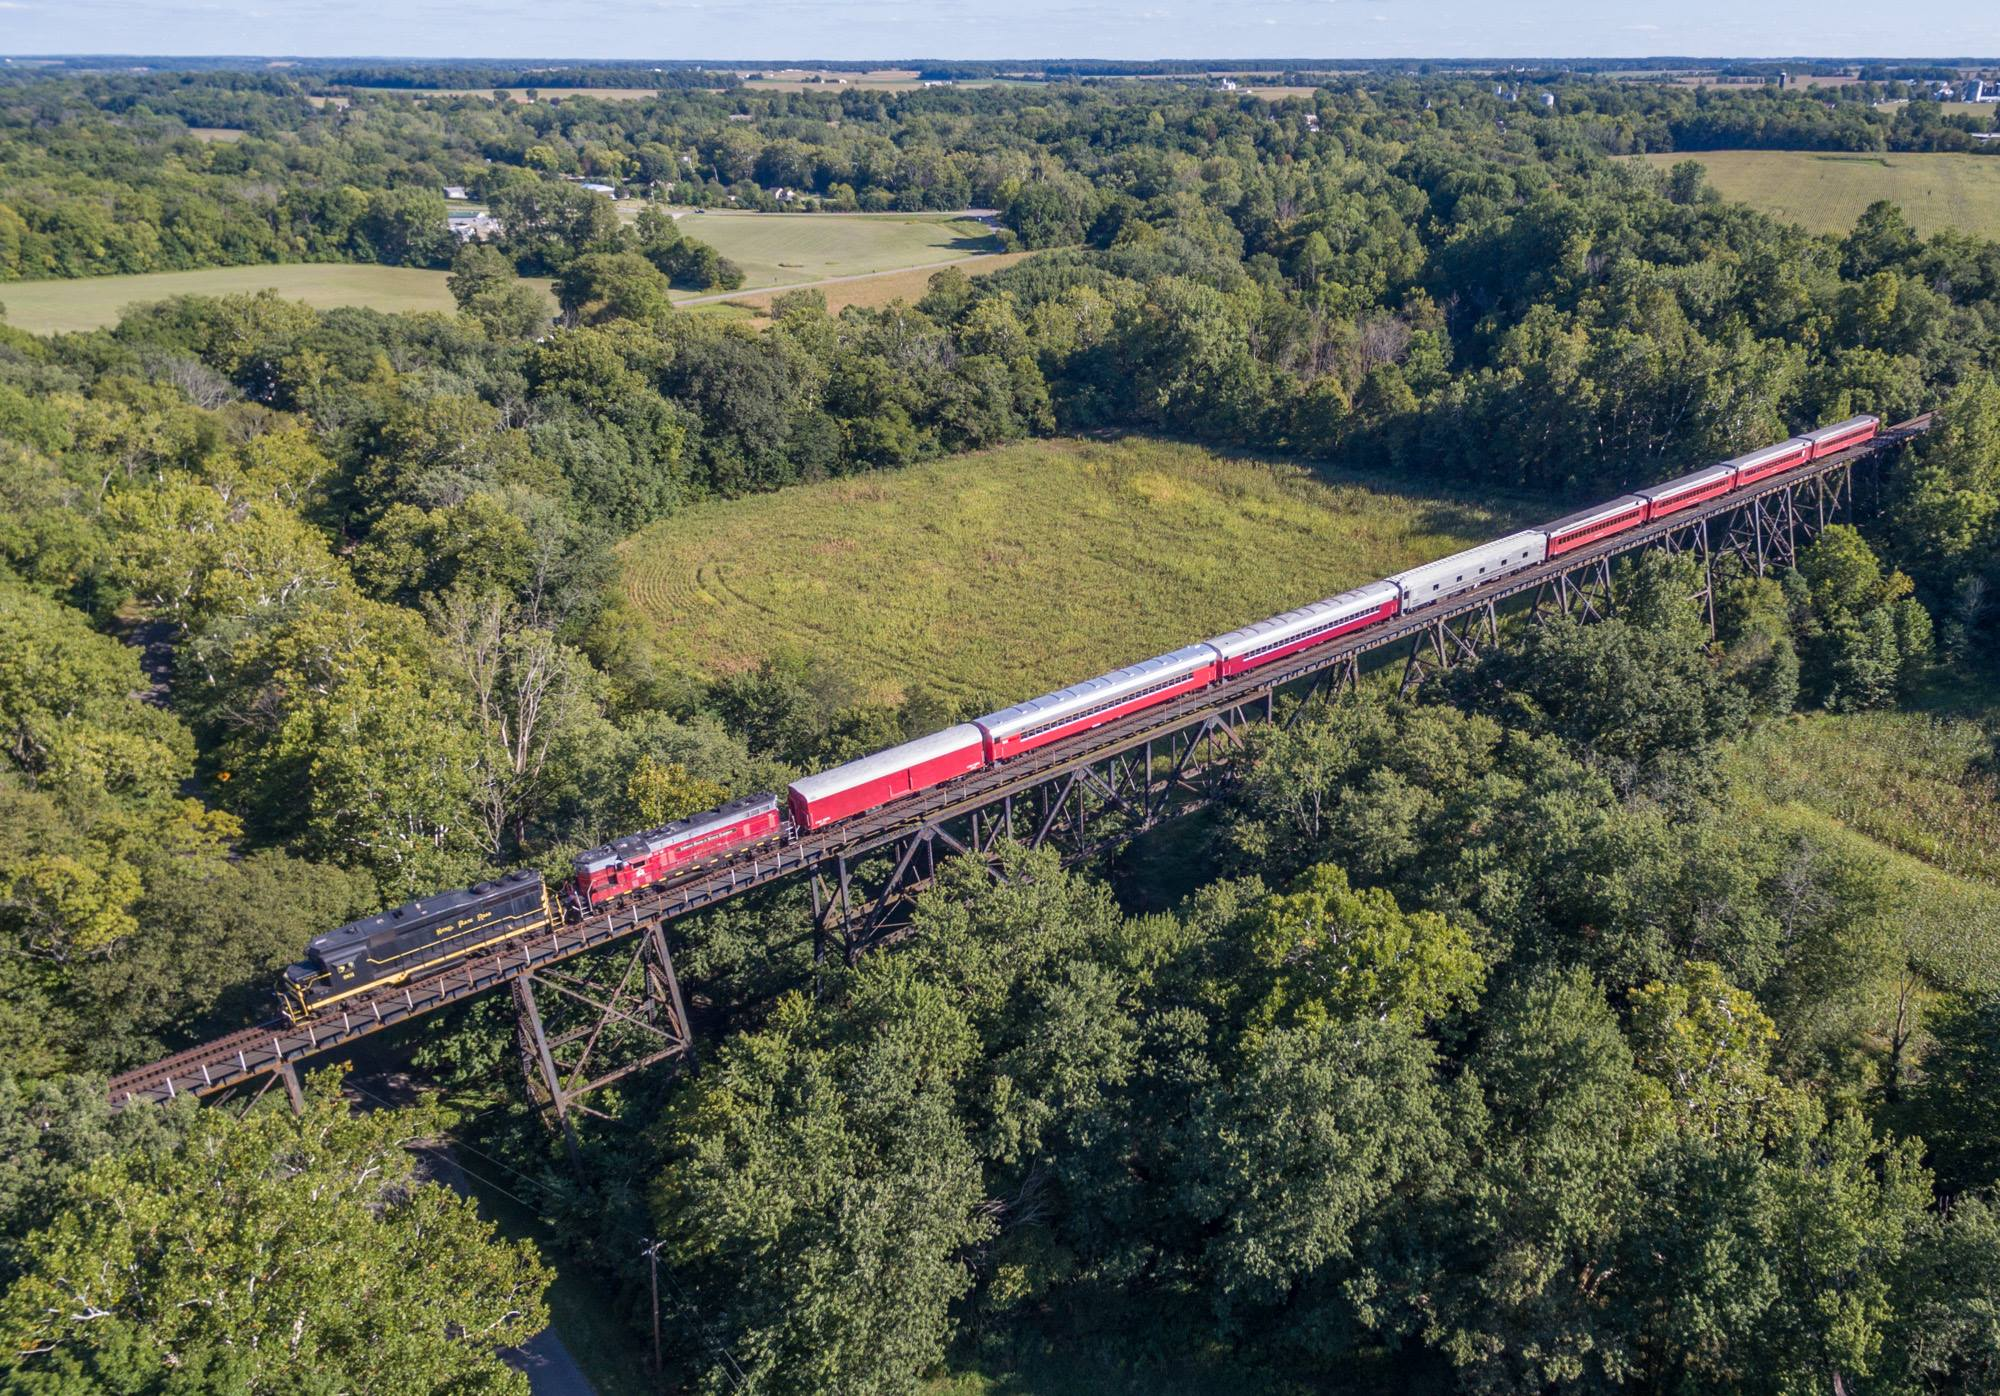 Our train crossing the Quincy High Bridge in Quincy, OH. Ride over is bridge on our  Lima Limited  excursion this spring. 2018 train rides will feature deluxe class air conditioned seating.